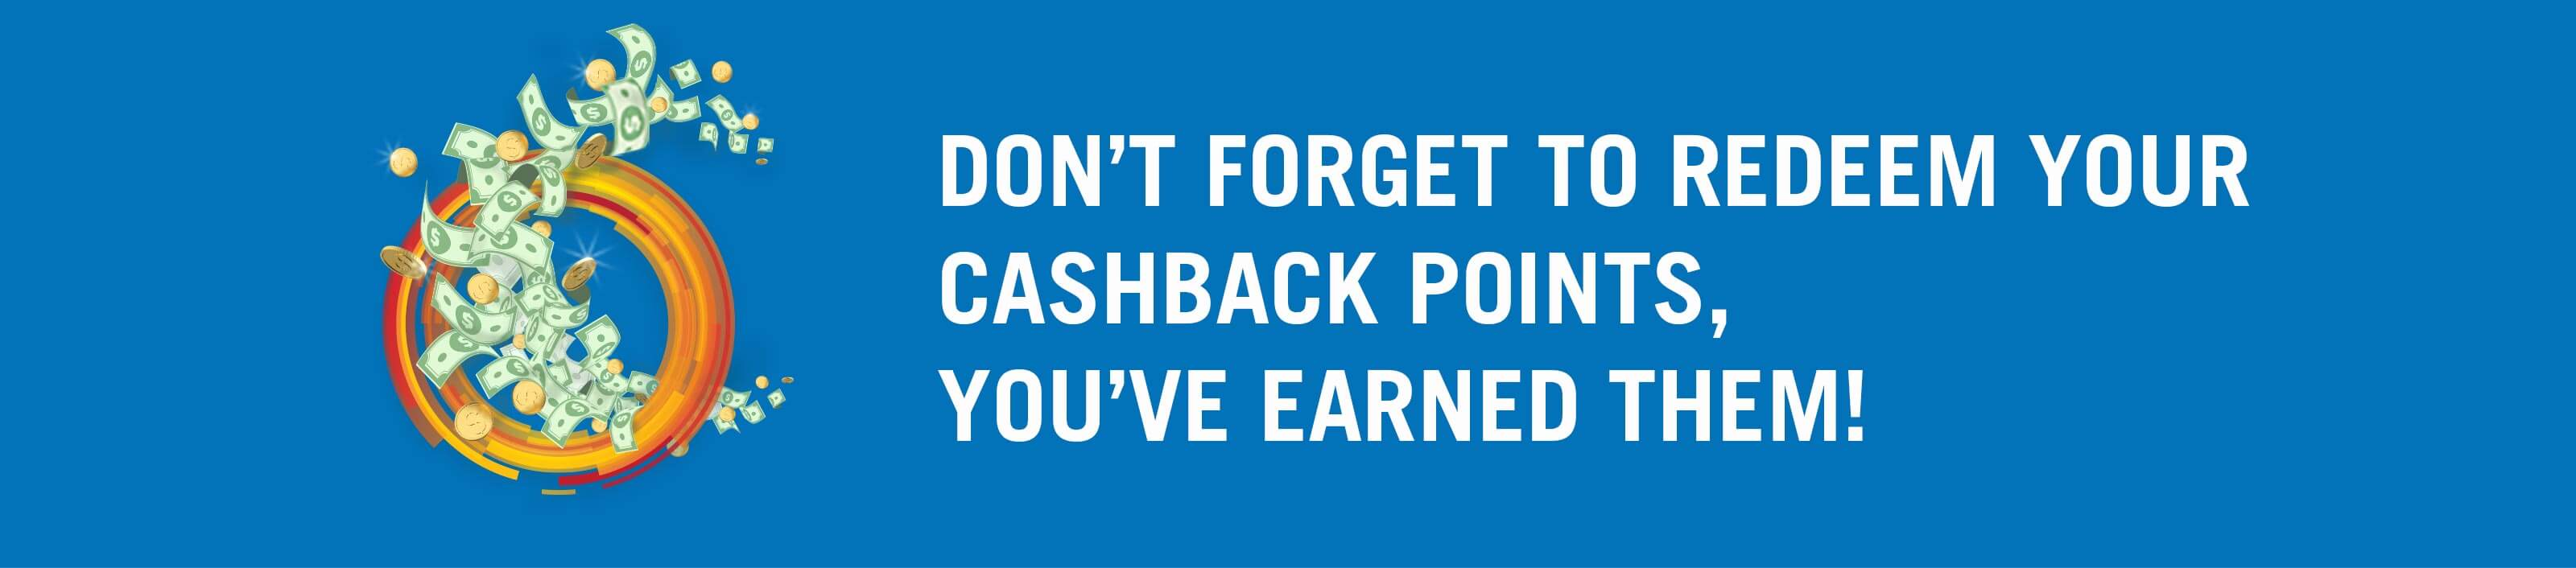 Don't forget to redeem your Cashback Points, you've earned them!